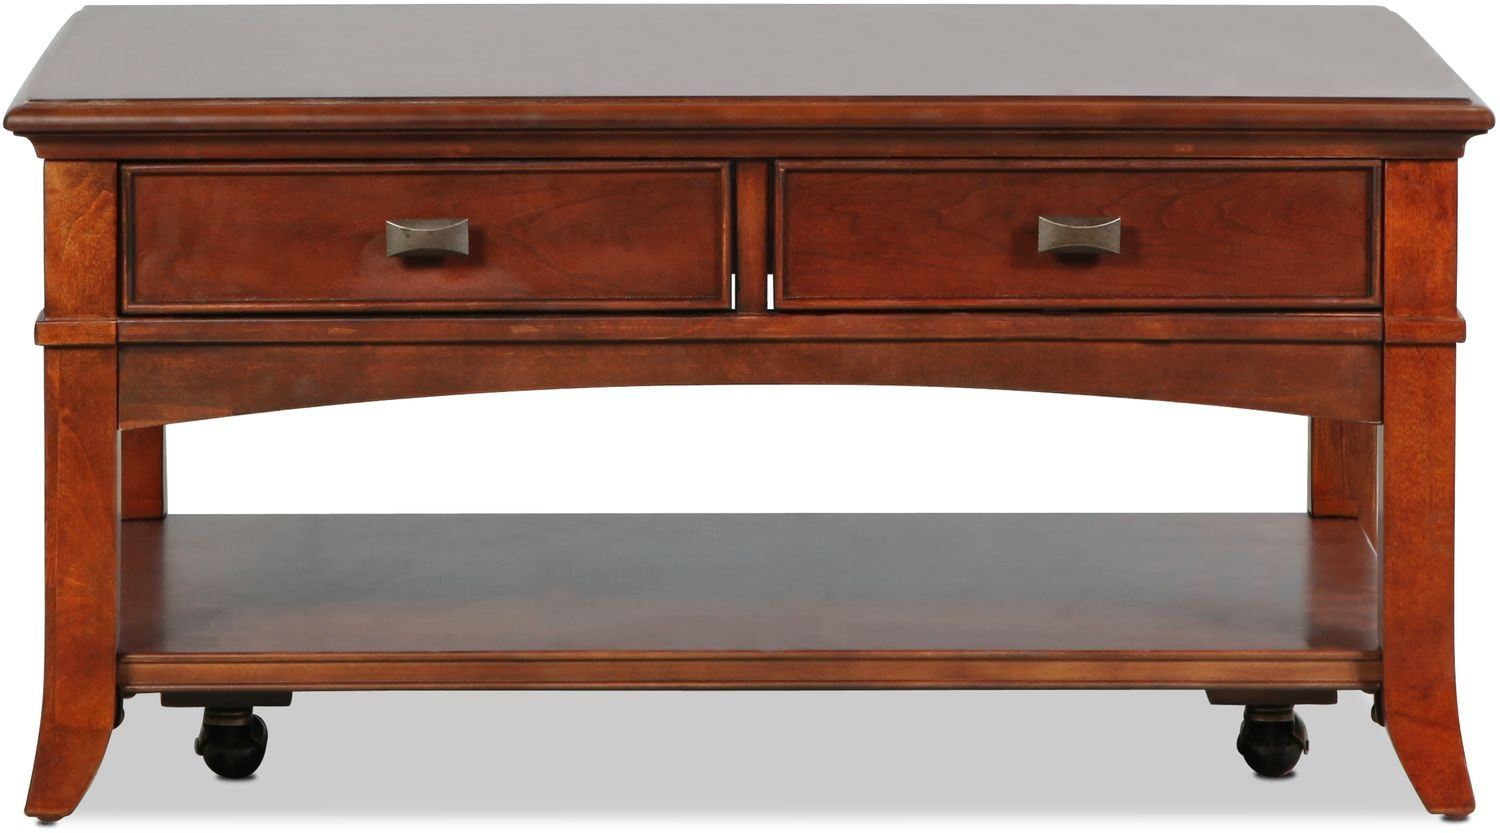 Accent and Occasional Furniture - Cambridge Coffee Table - Cherry